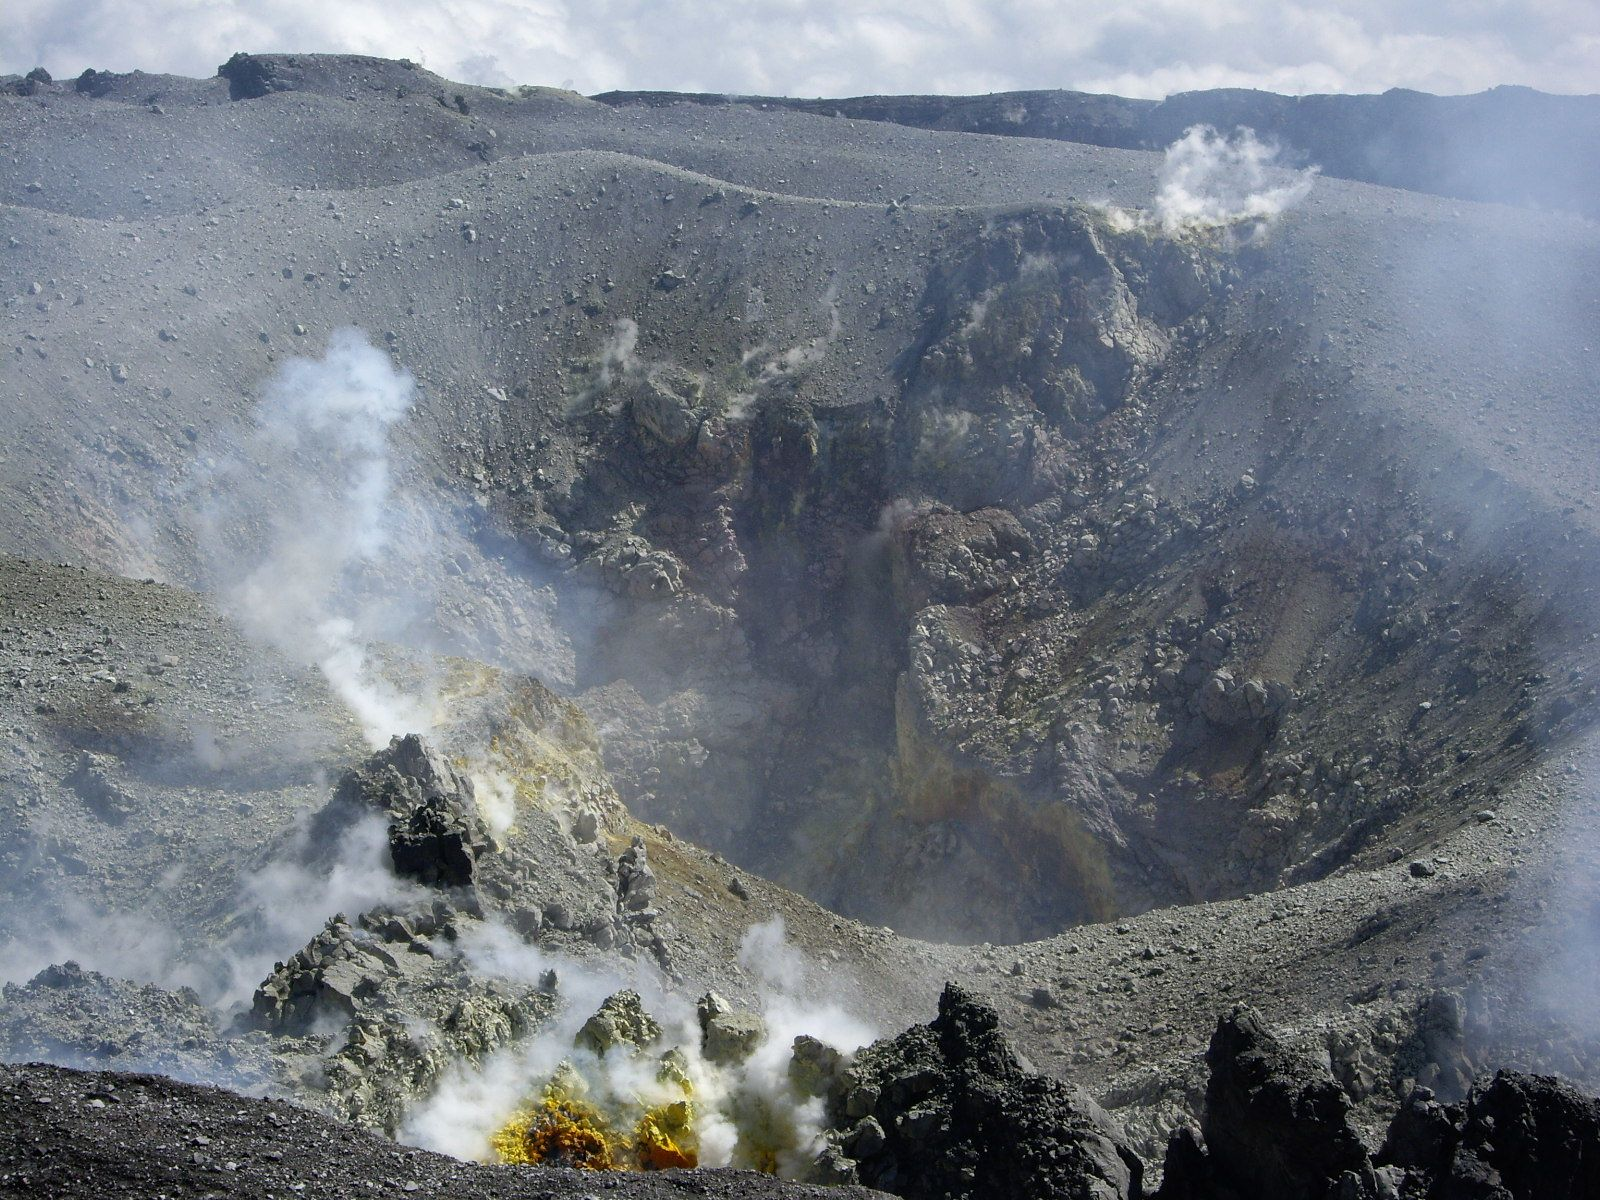 Gunung Slamet - active crater - photo R. Woodall